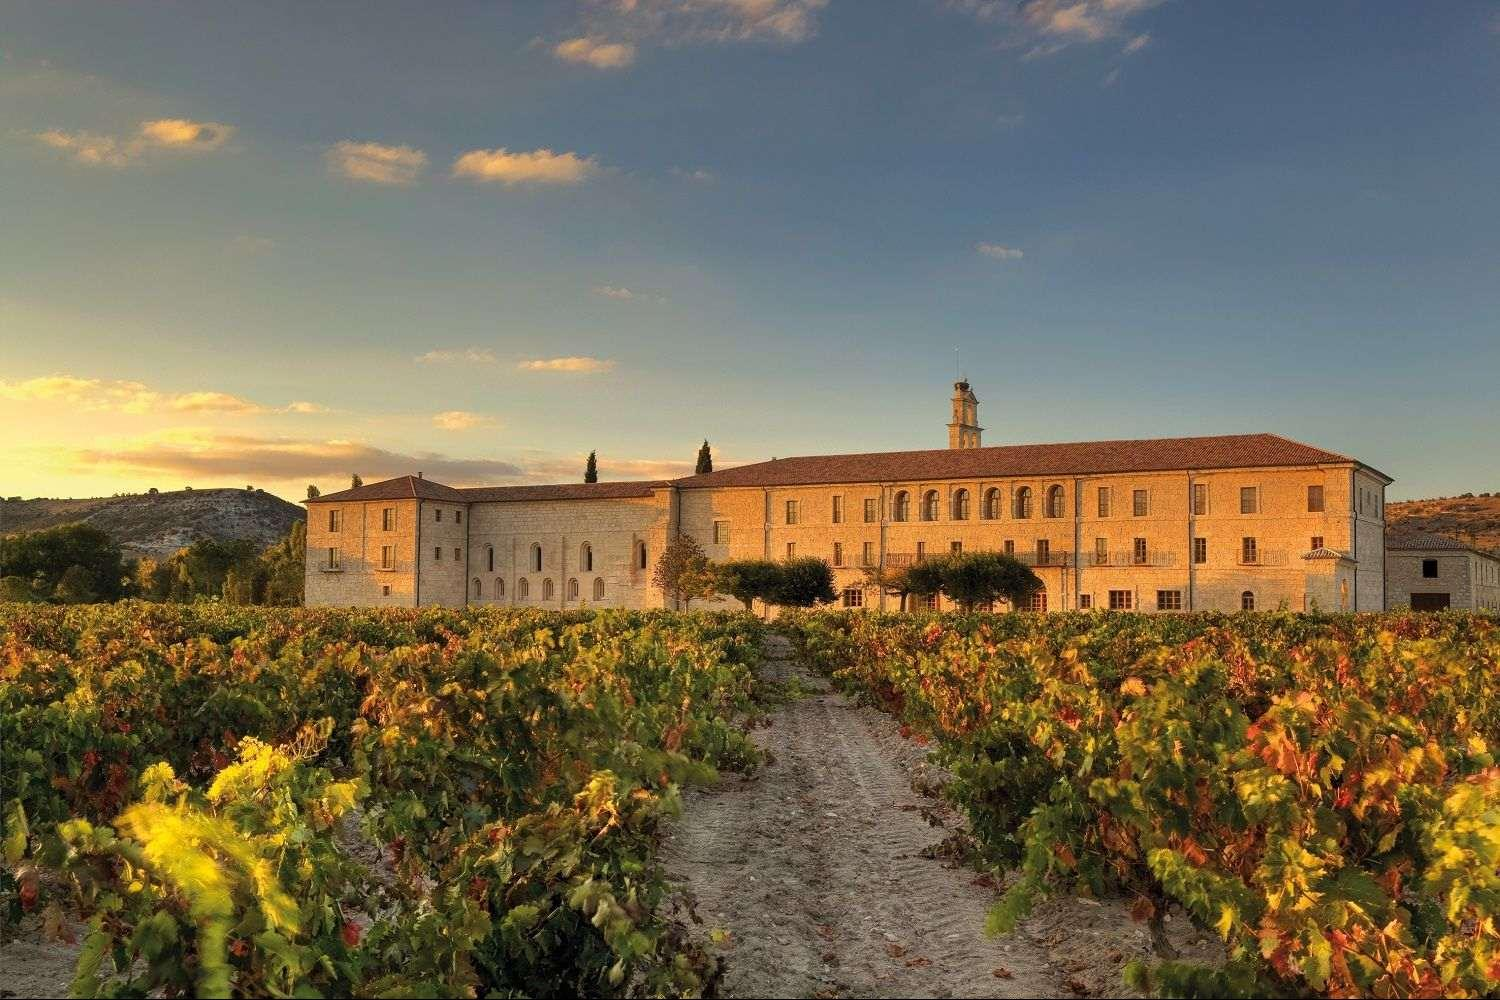 Luxury Ribera Duero tour with views to vineyards from tasting rooms